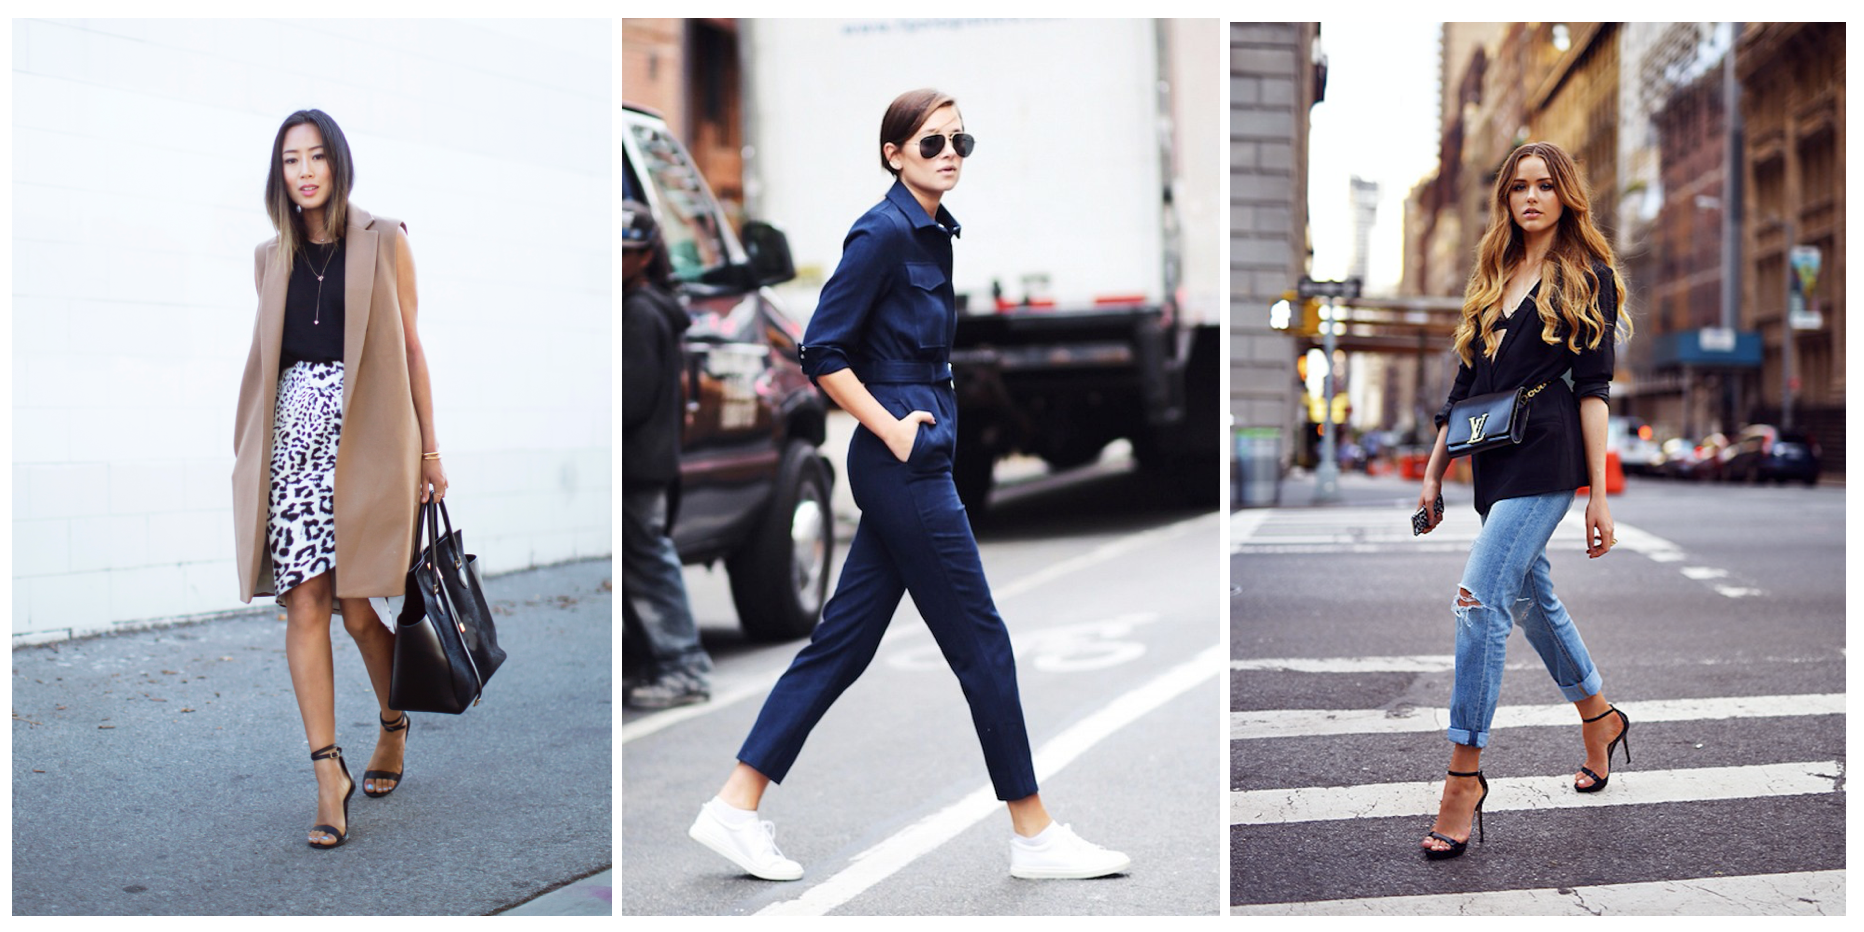 from left: Aimee Song, Danielle Bernstein, and Kristina Bazan